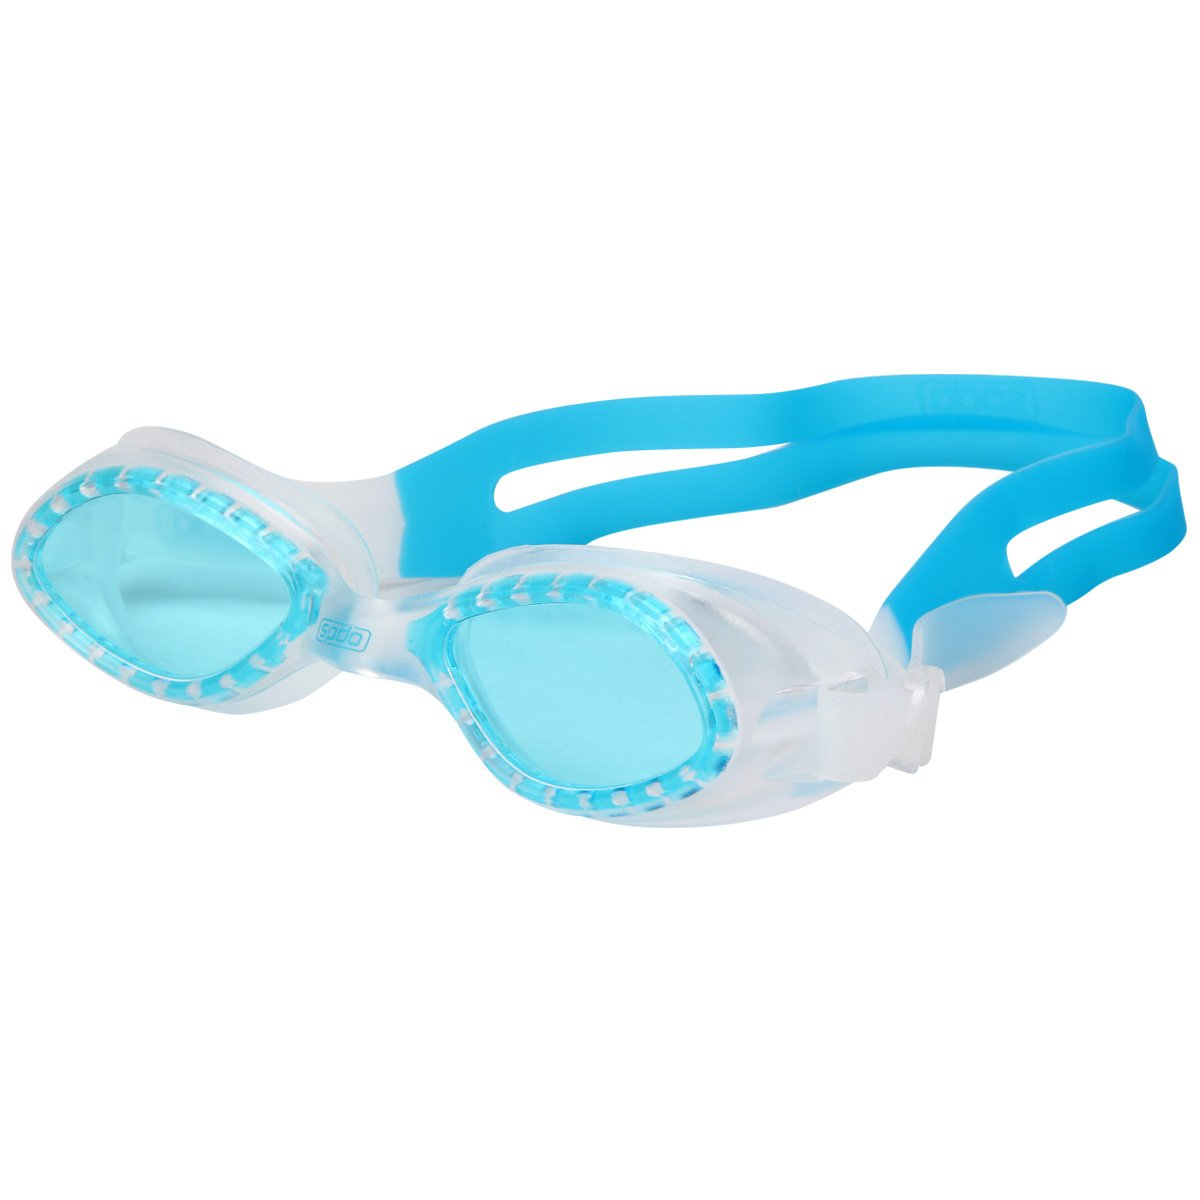 Culos speedo legend azul piscina for Oculos piscina